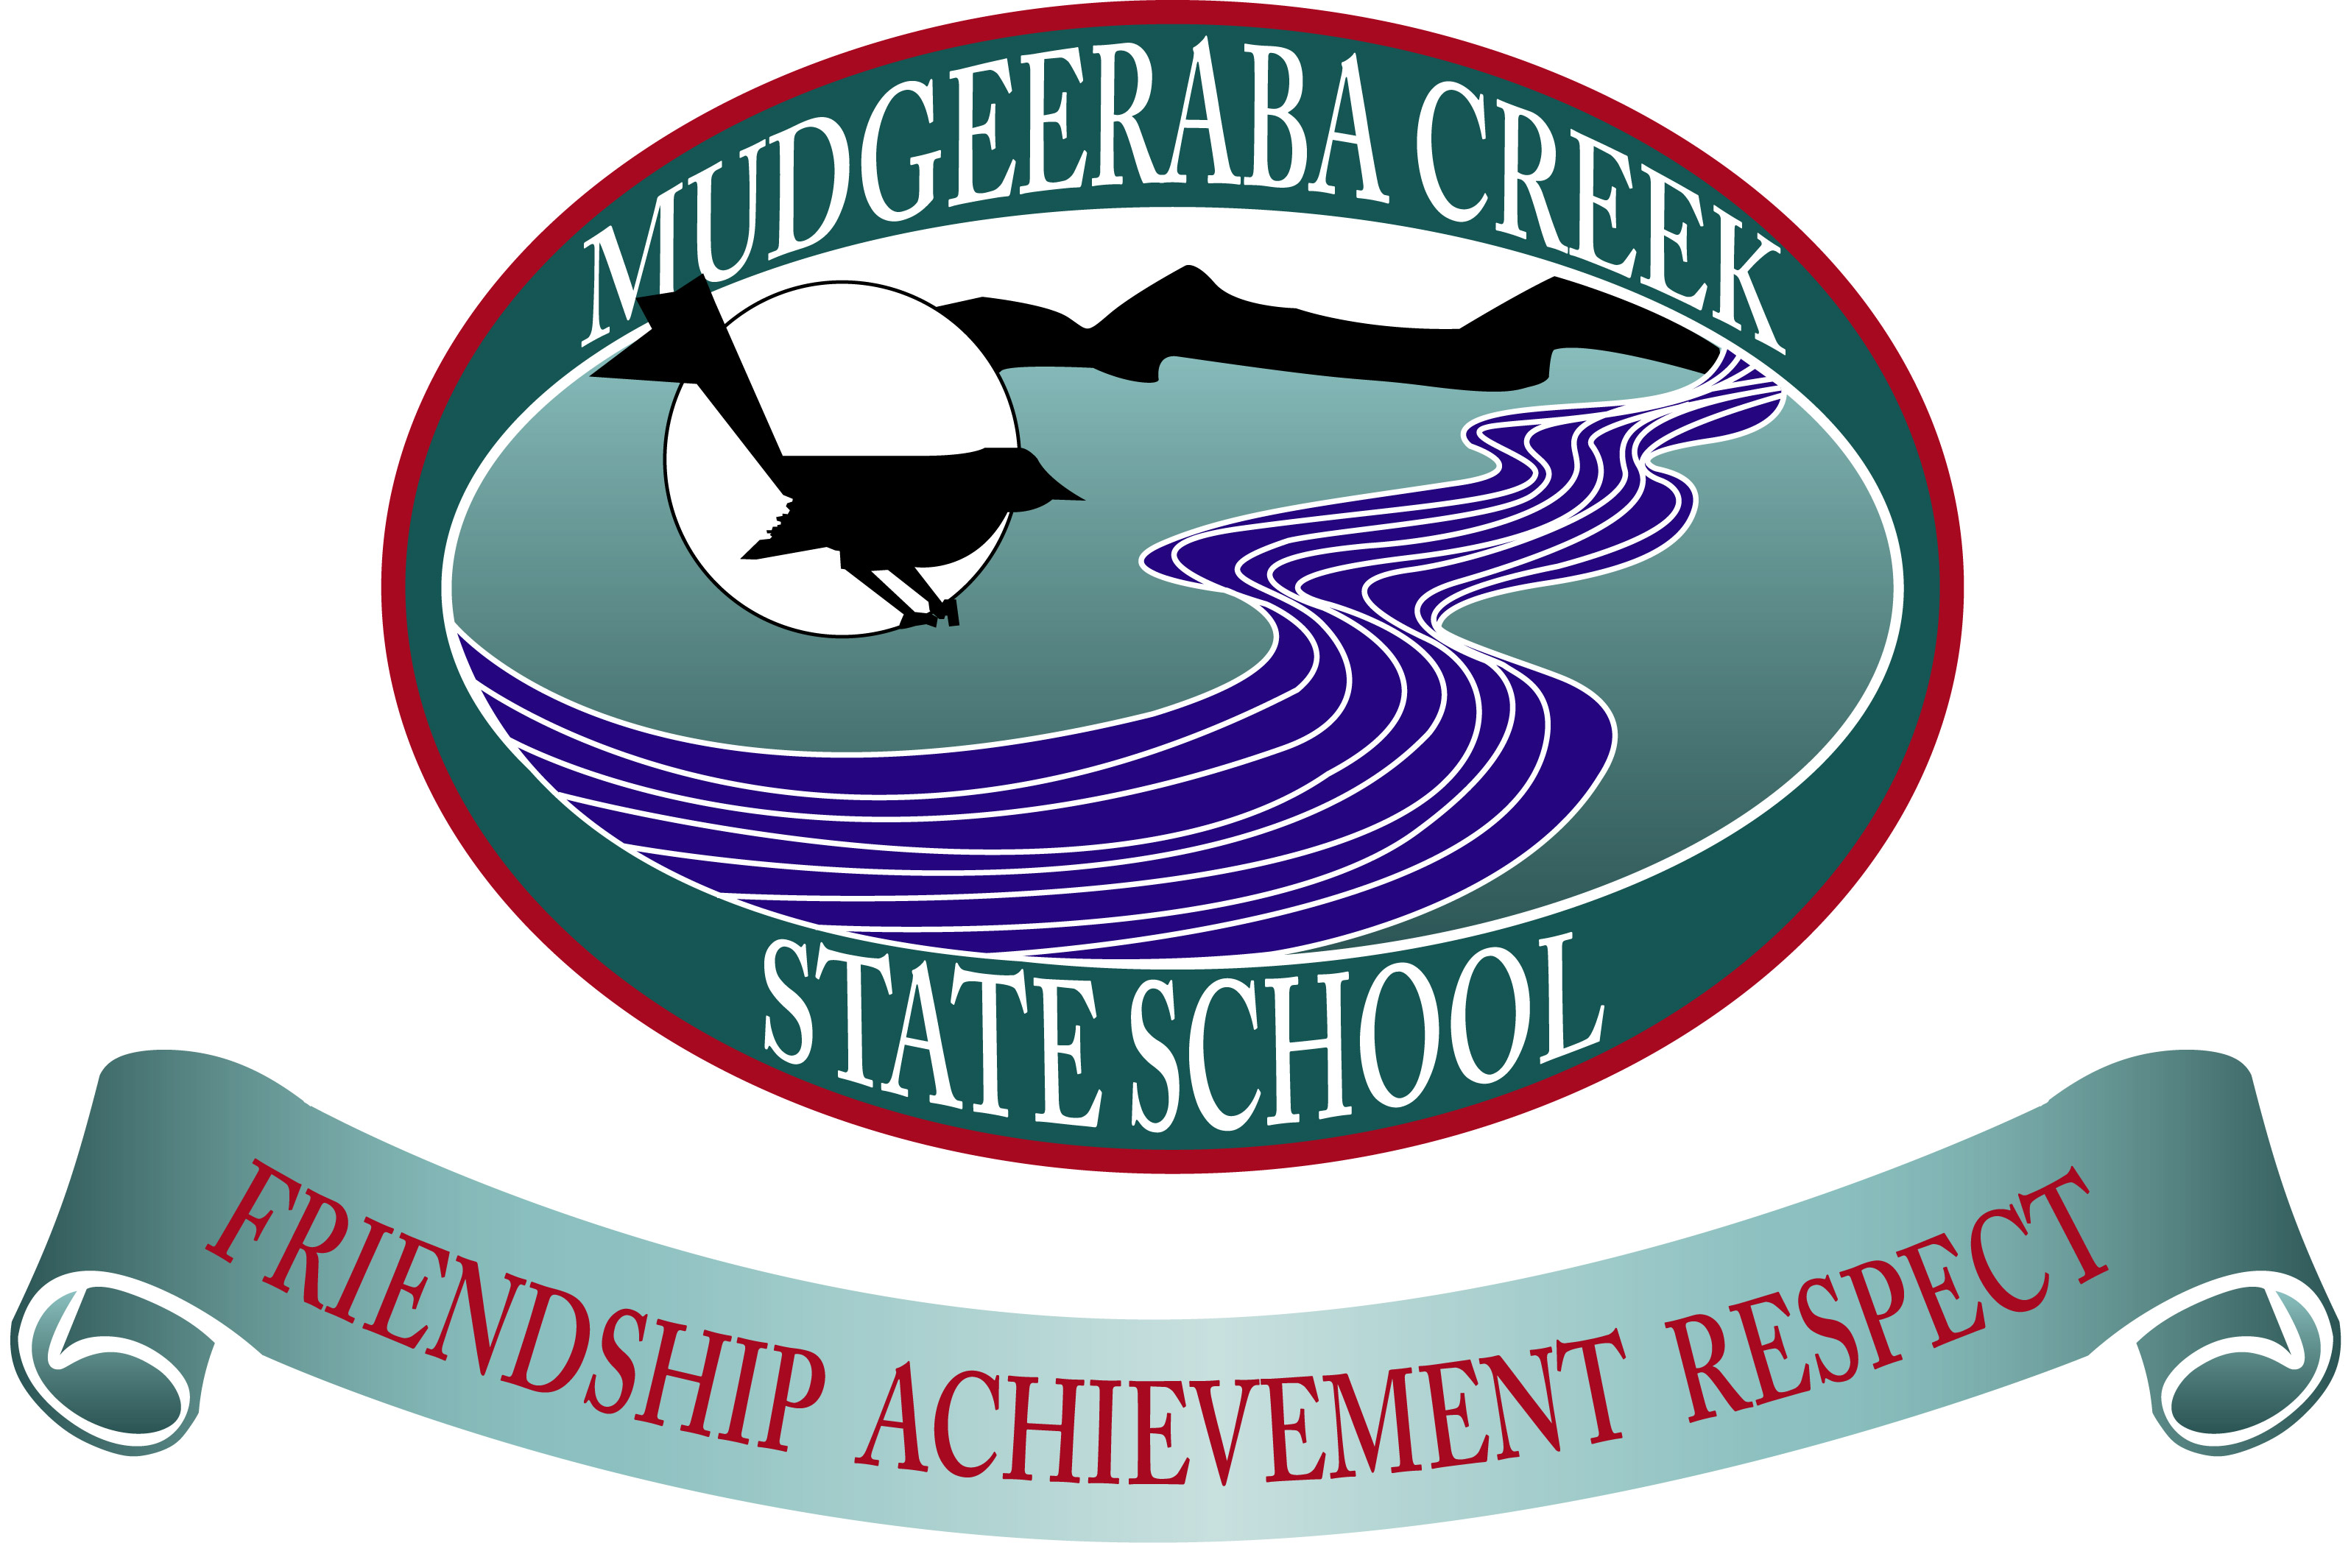 Mudgeeraba Creek State School